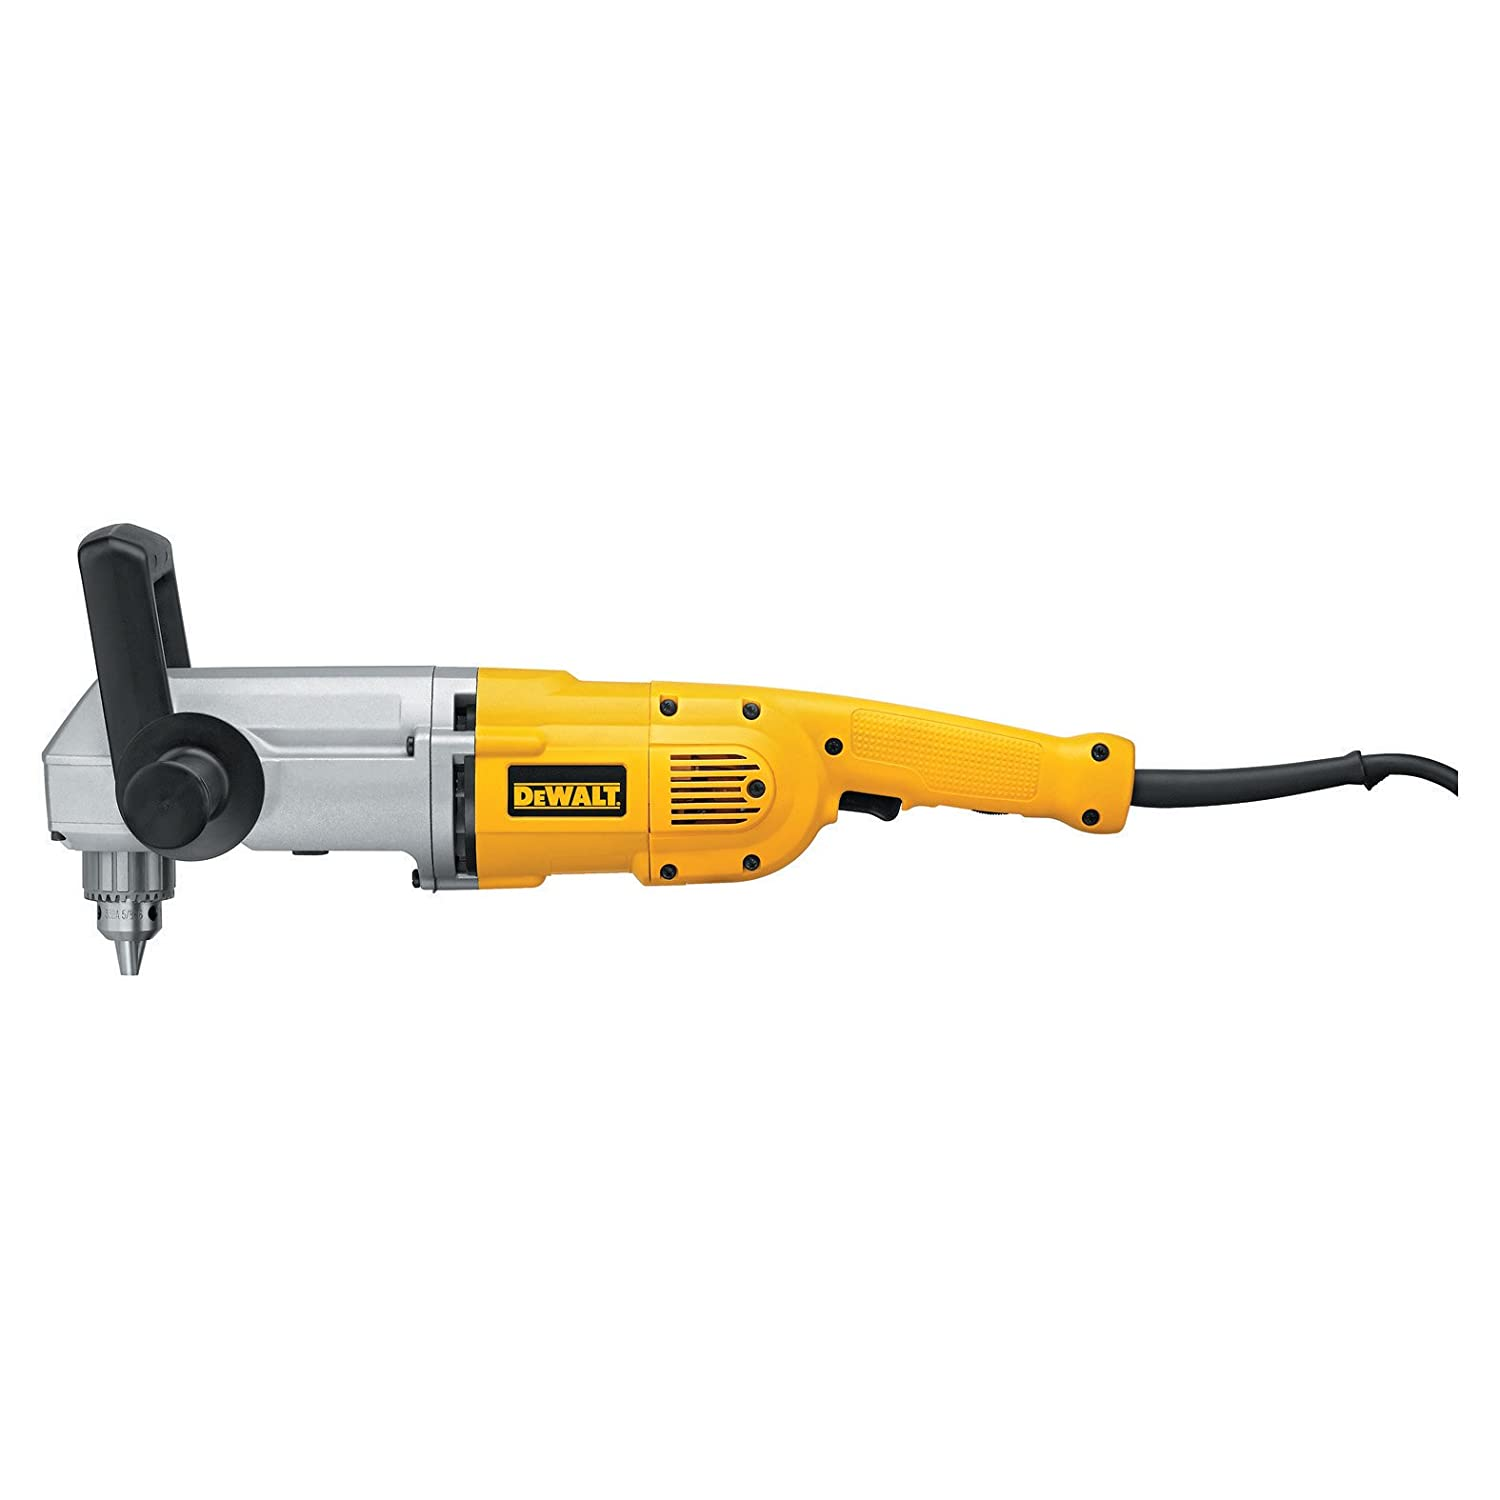 61McQeJVwGL._SL1500_ dewalt dw124 11 5 amp 1 2 inch right angle drill power right  at webbmarketing.co